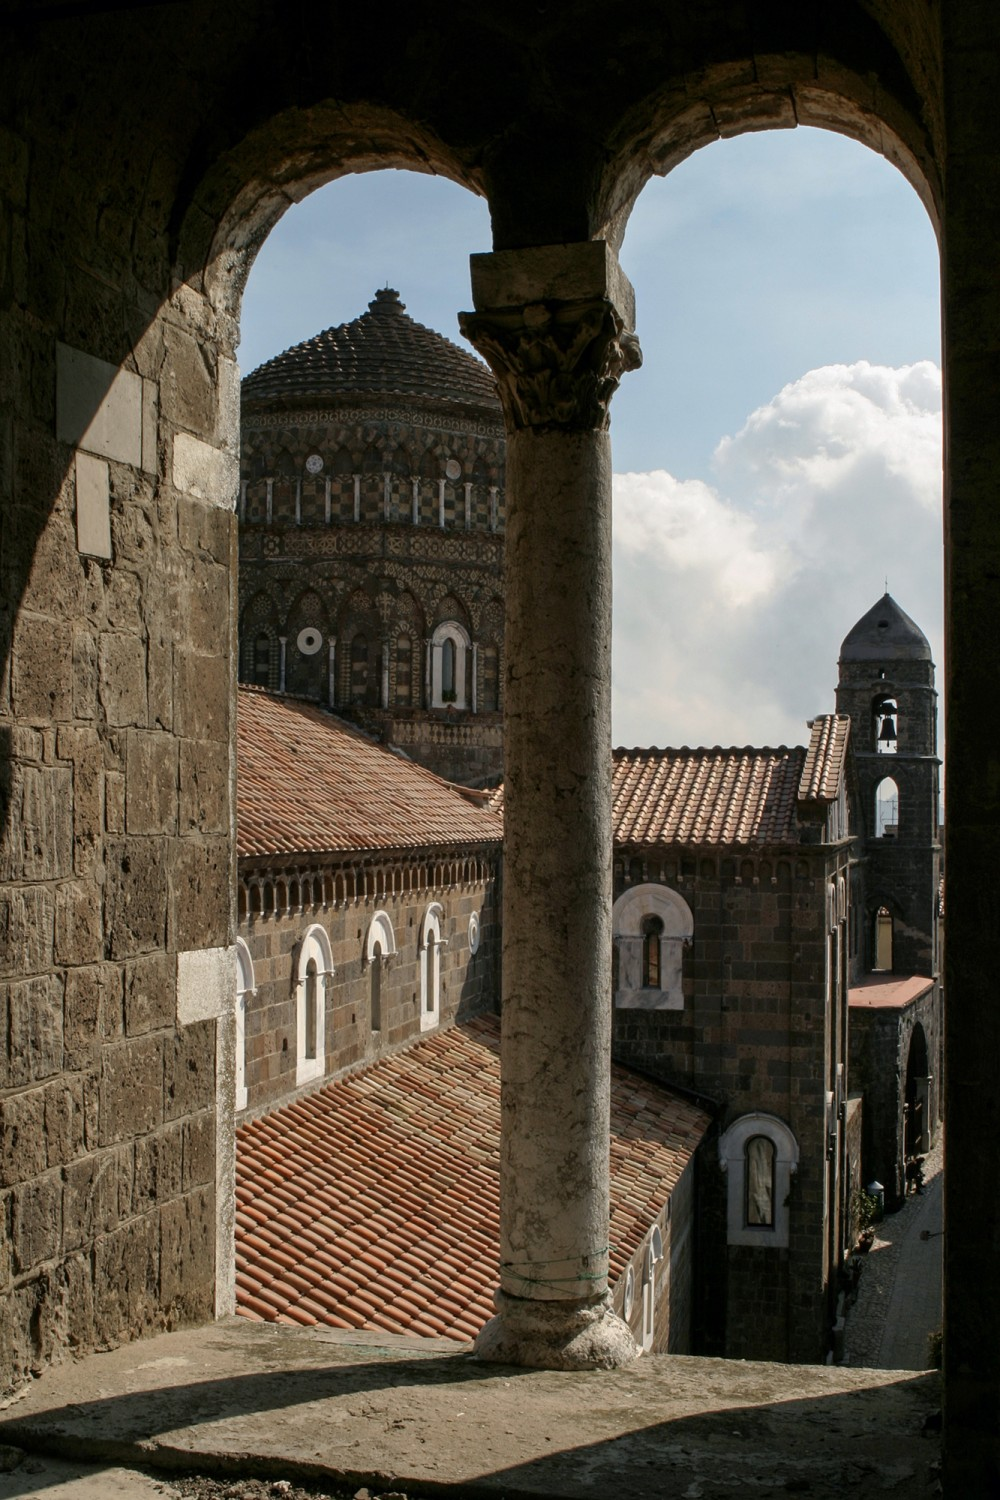 View of the tiburium with Arabic and Byzantine elements from the mullioned window of the bell tower. – © Bruno Cristillo